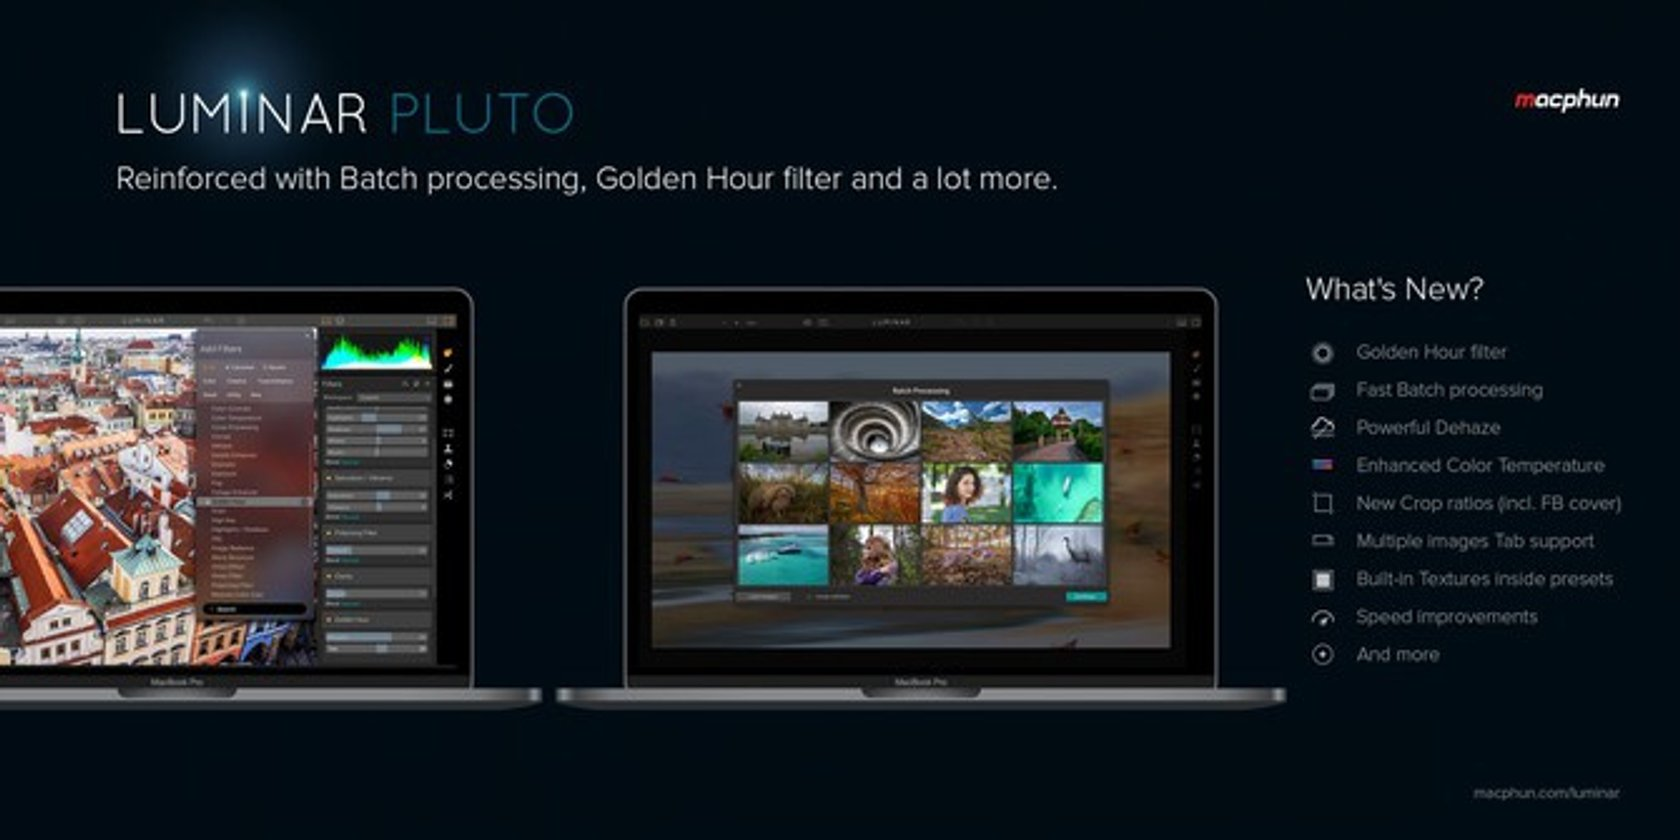 New Luminar Pluto | The best gets even better | Skylum Blog